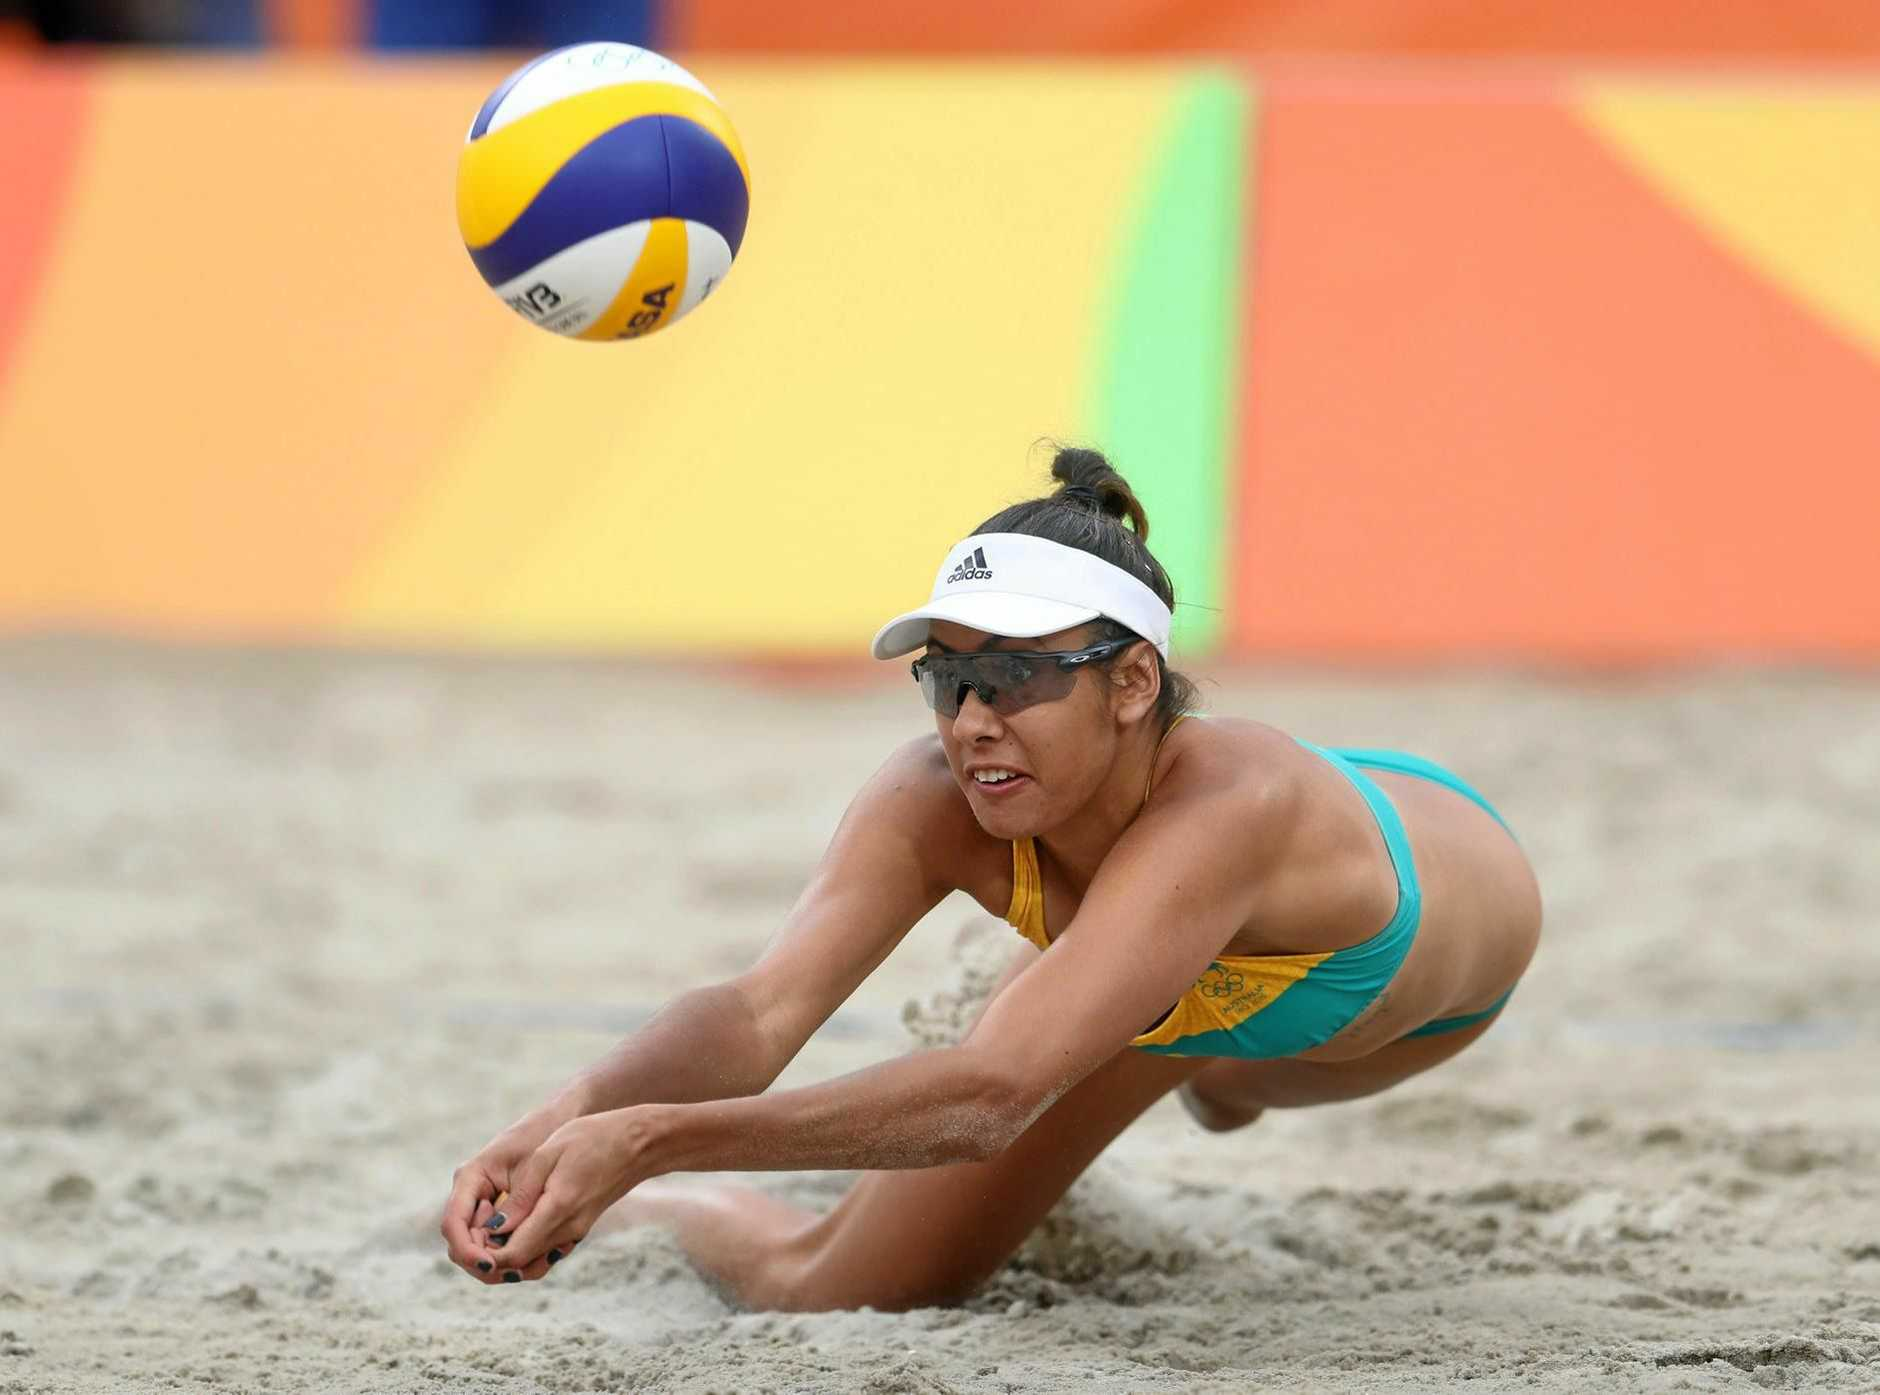 GOING FOR GOLD: Kingaroy's Taliqua Clancy dives for a ball during a women's beach volleyball match against Netherlands at the 2016 Summer Olympics in Rio de Janeiro, Brazil.